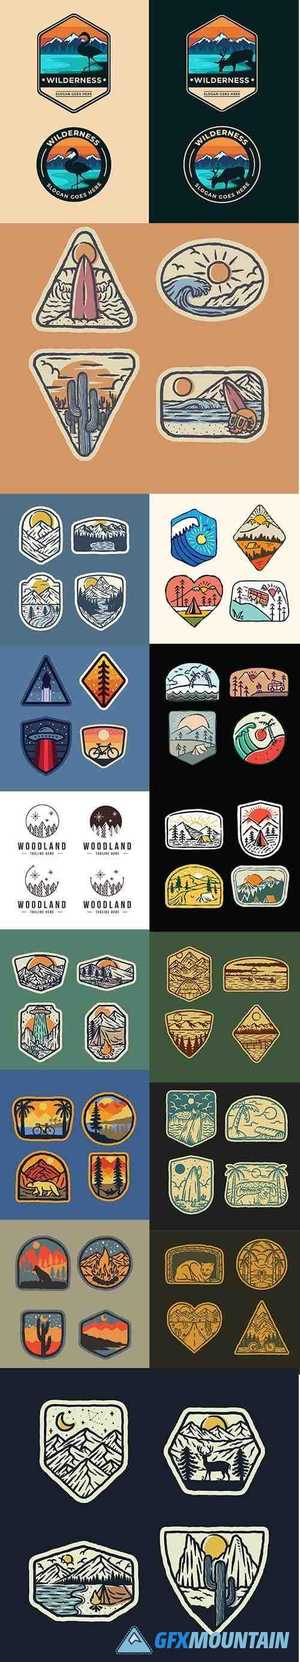 Camping, Mountain, Nature Wild Badge Graphic Illustrations Set